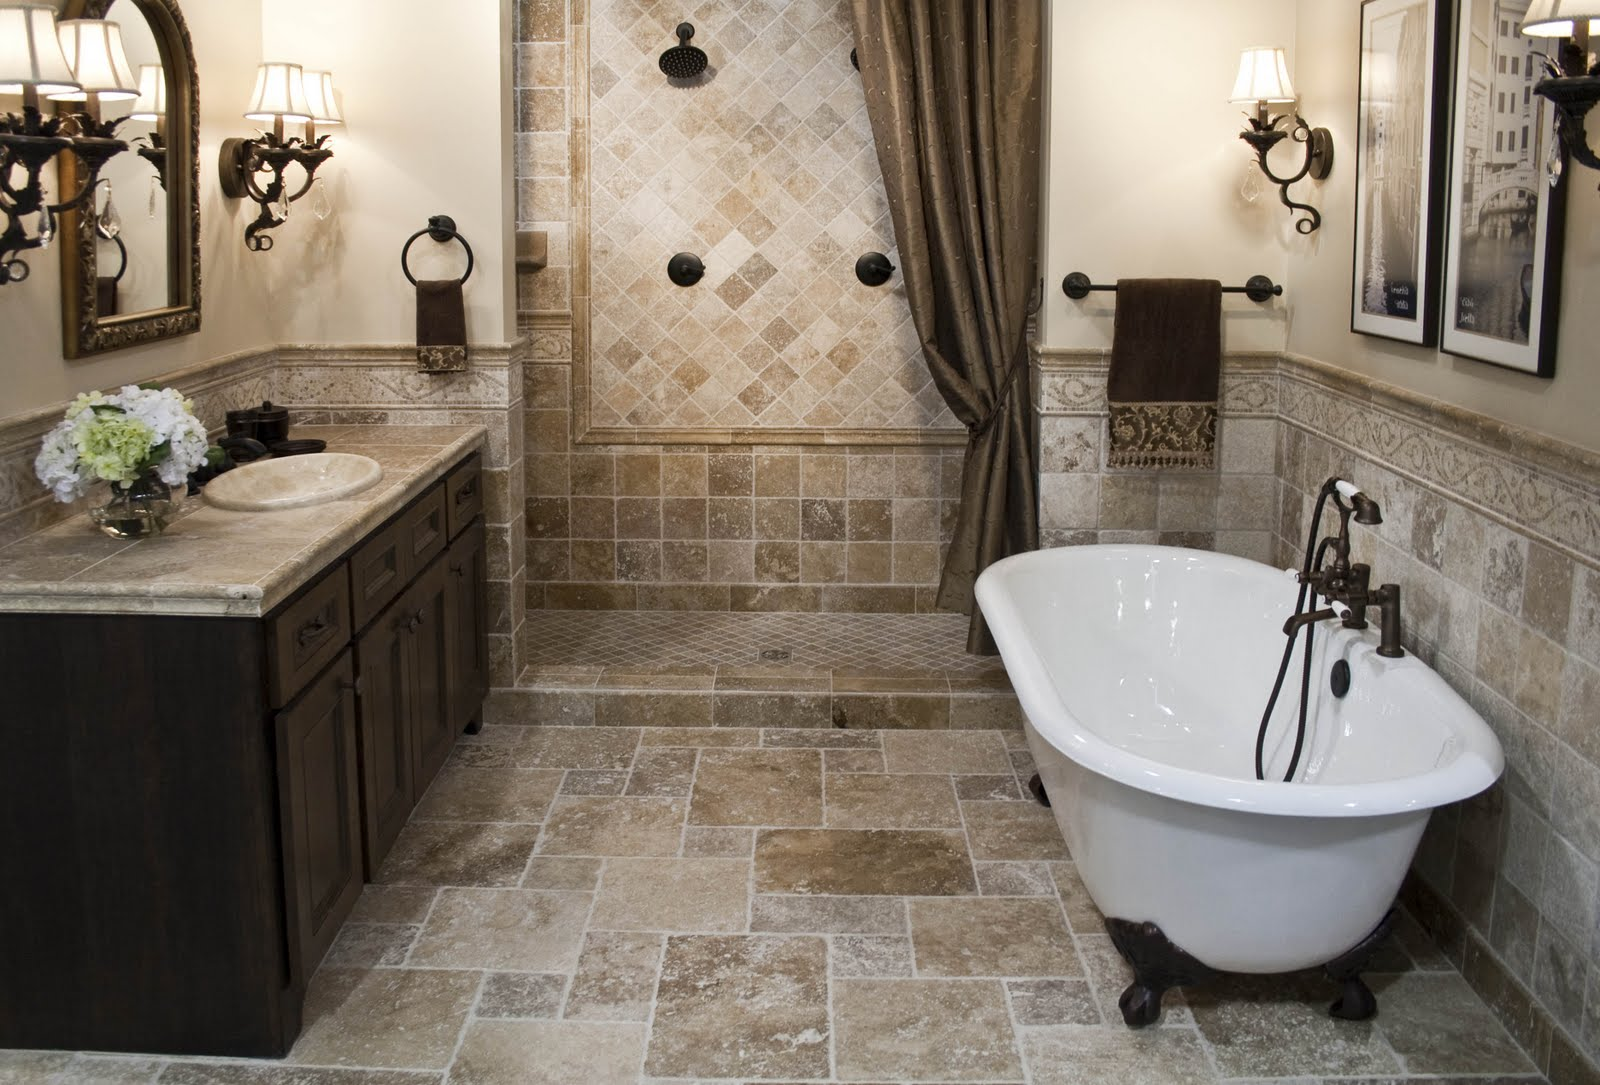 tips for diy bathroom renovations on a budget